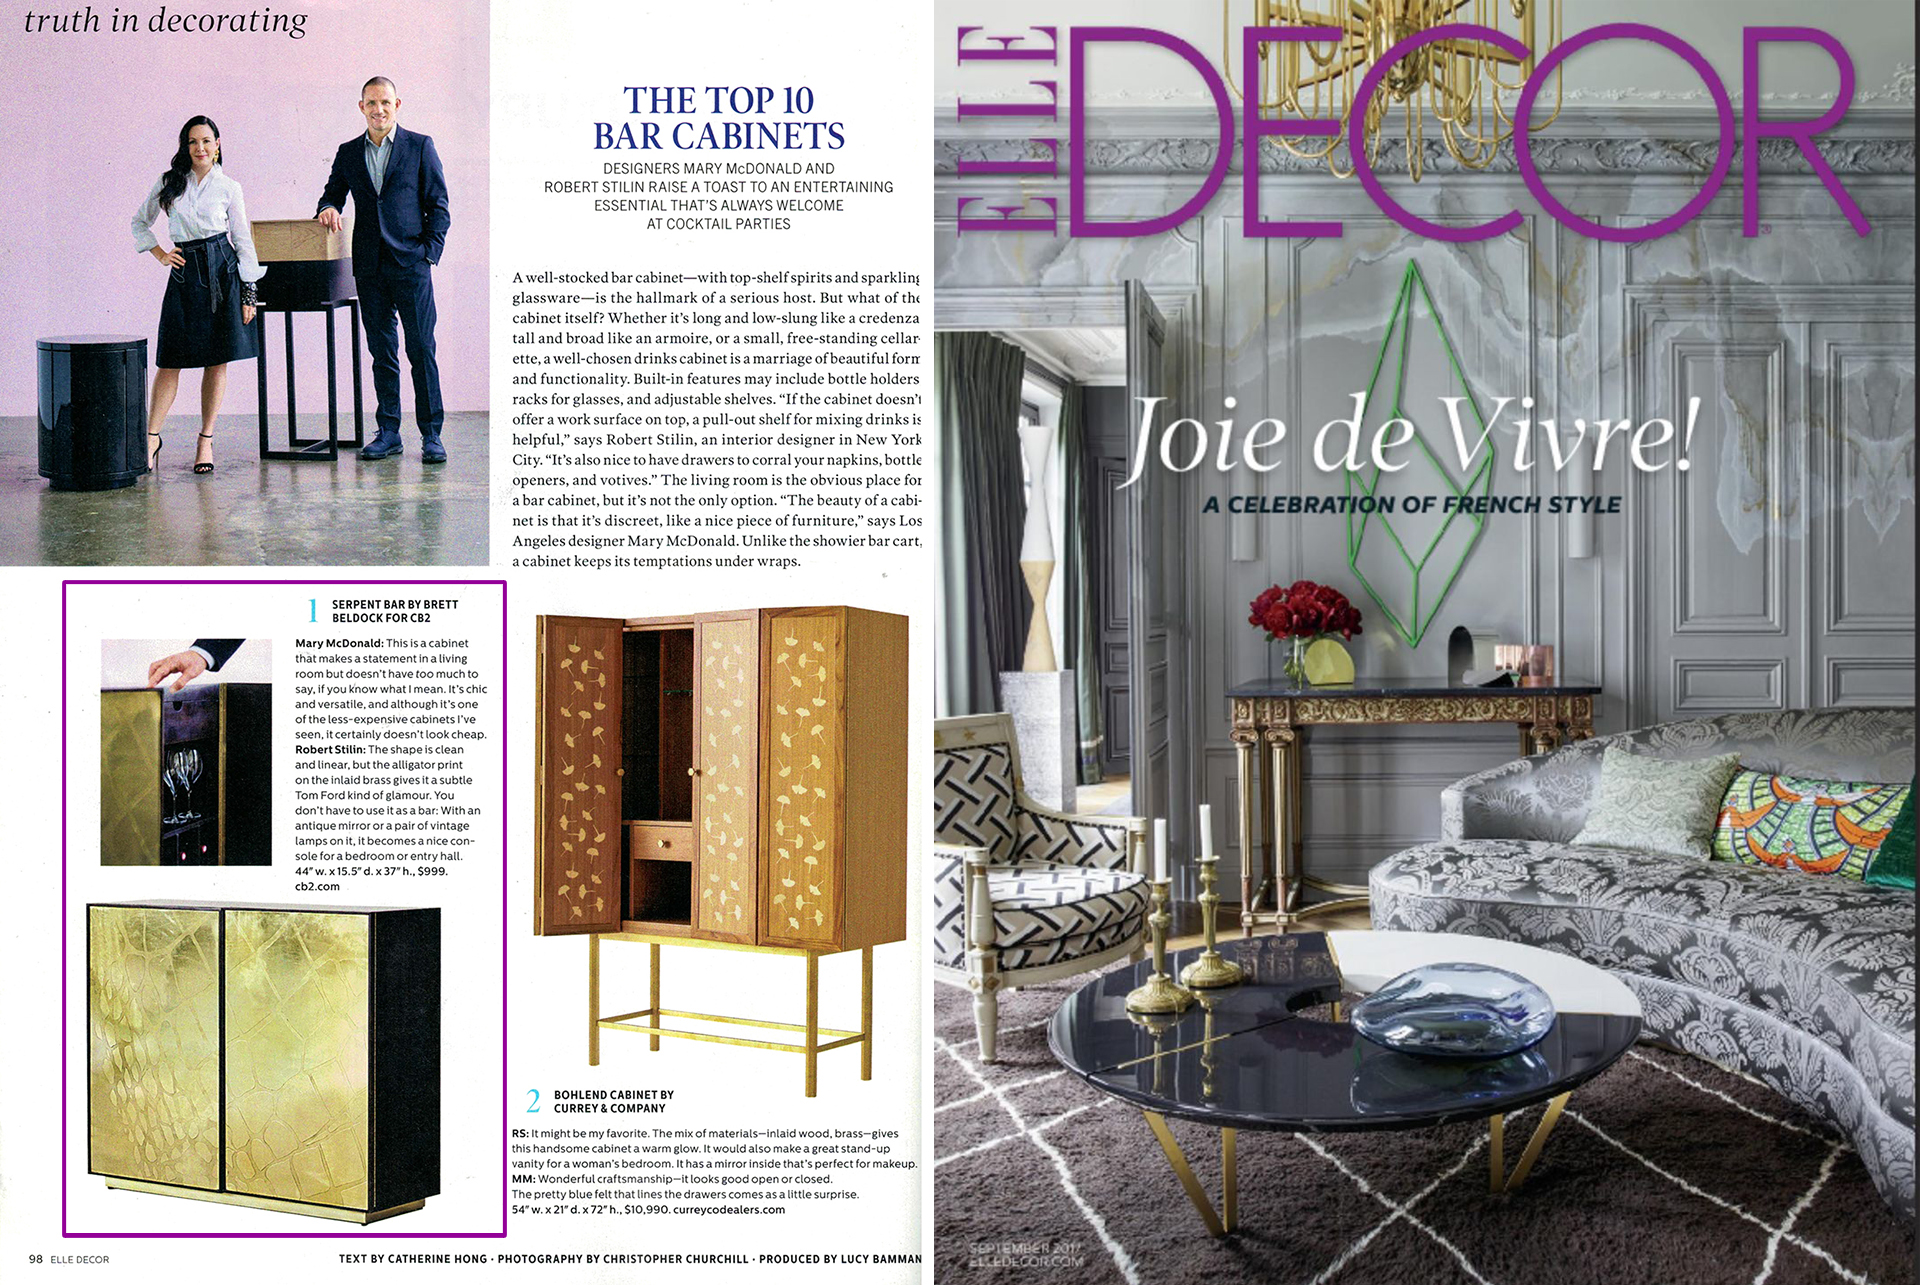 Brett Beldock for CB2 in Elle Decor